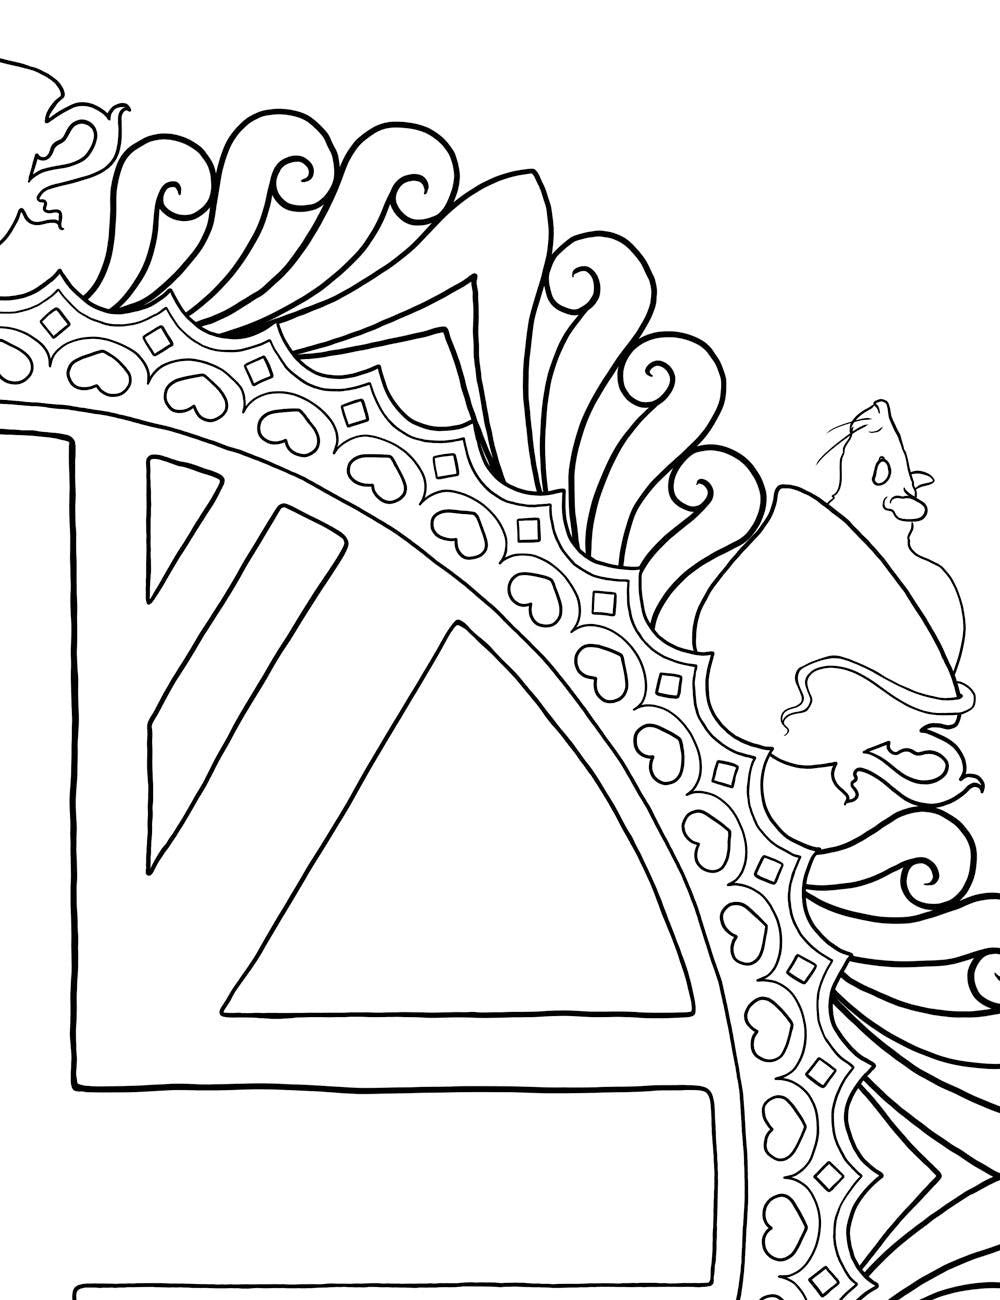 Asylum Coloring Book Page: British Flag